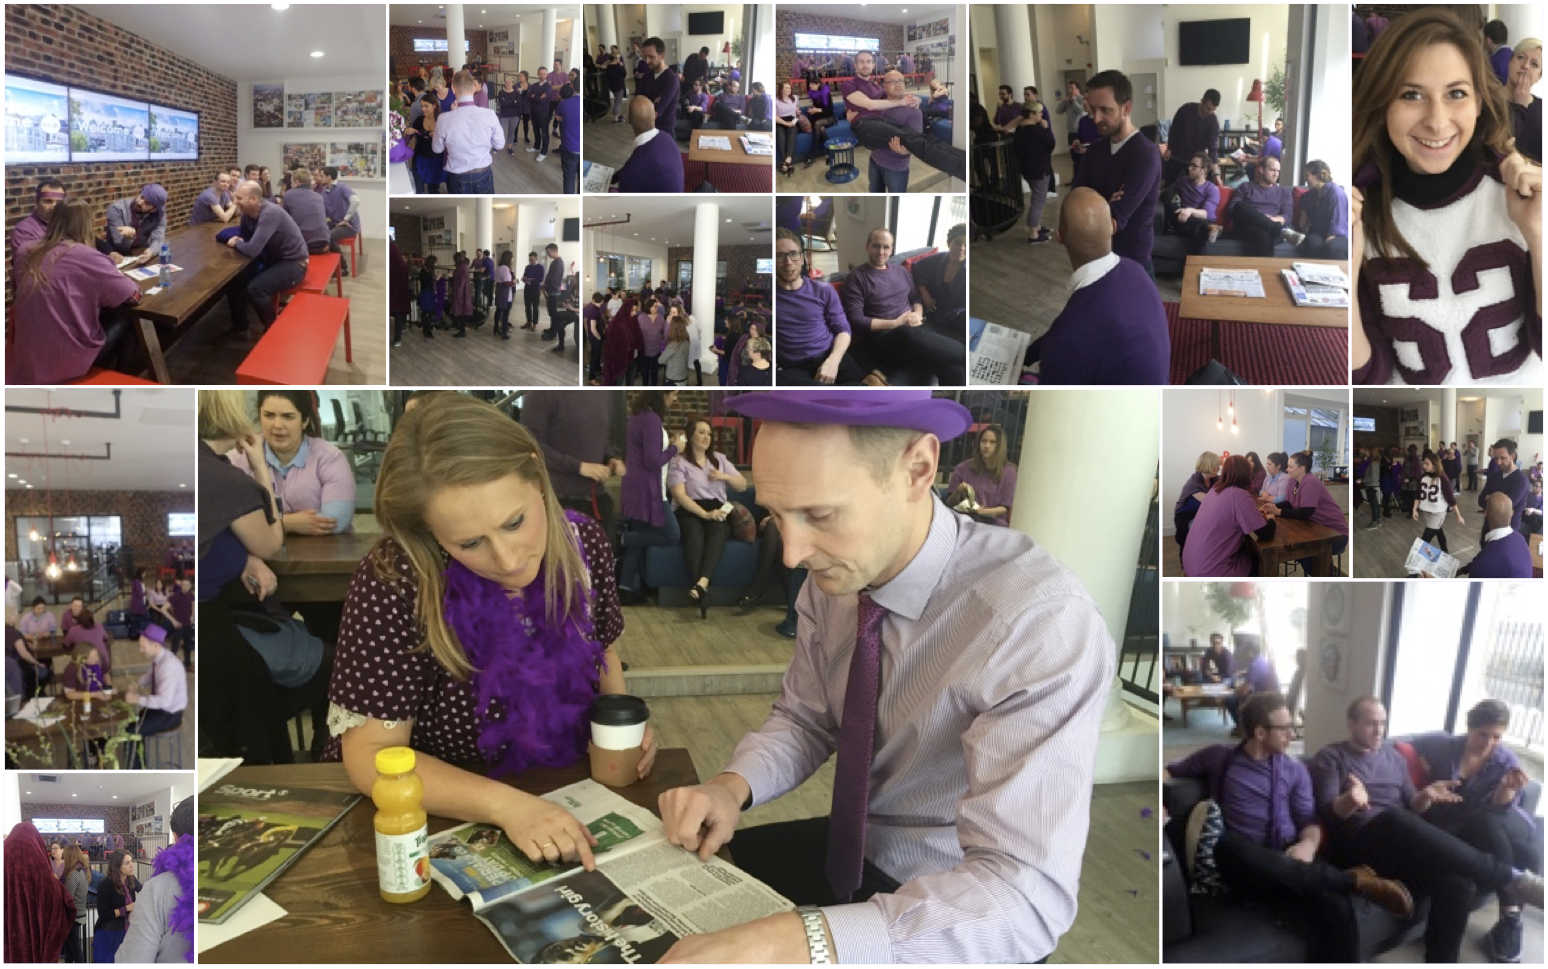 It's all gone a bit purple @OMD_UK in support of #IWD2015 #50shadesofpurple http://t.co/vNDsxVS7A1